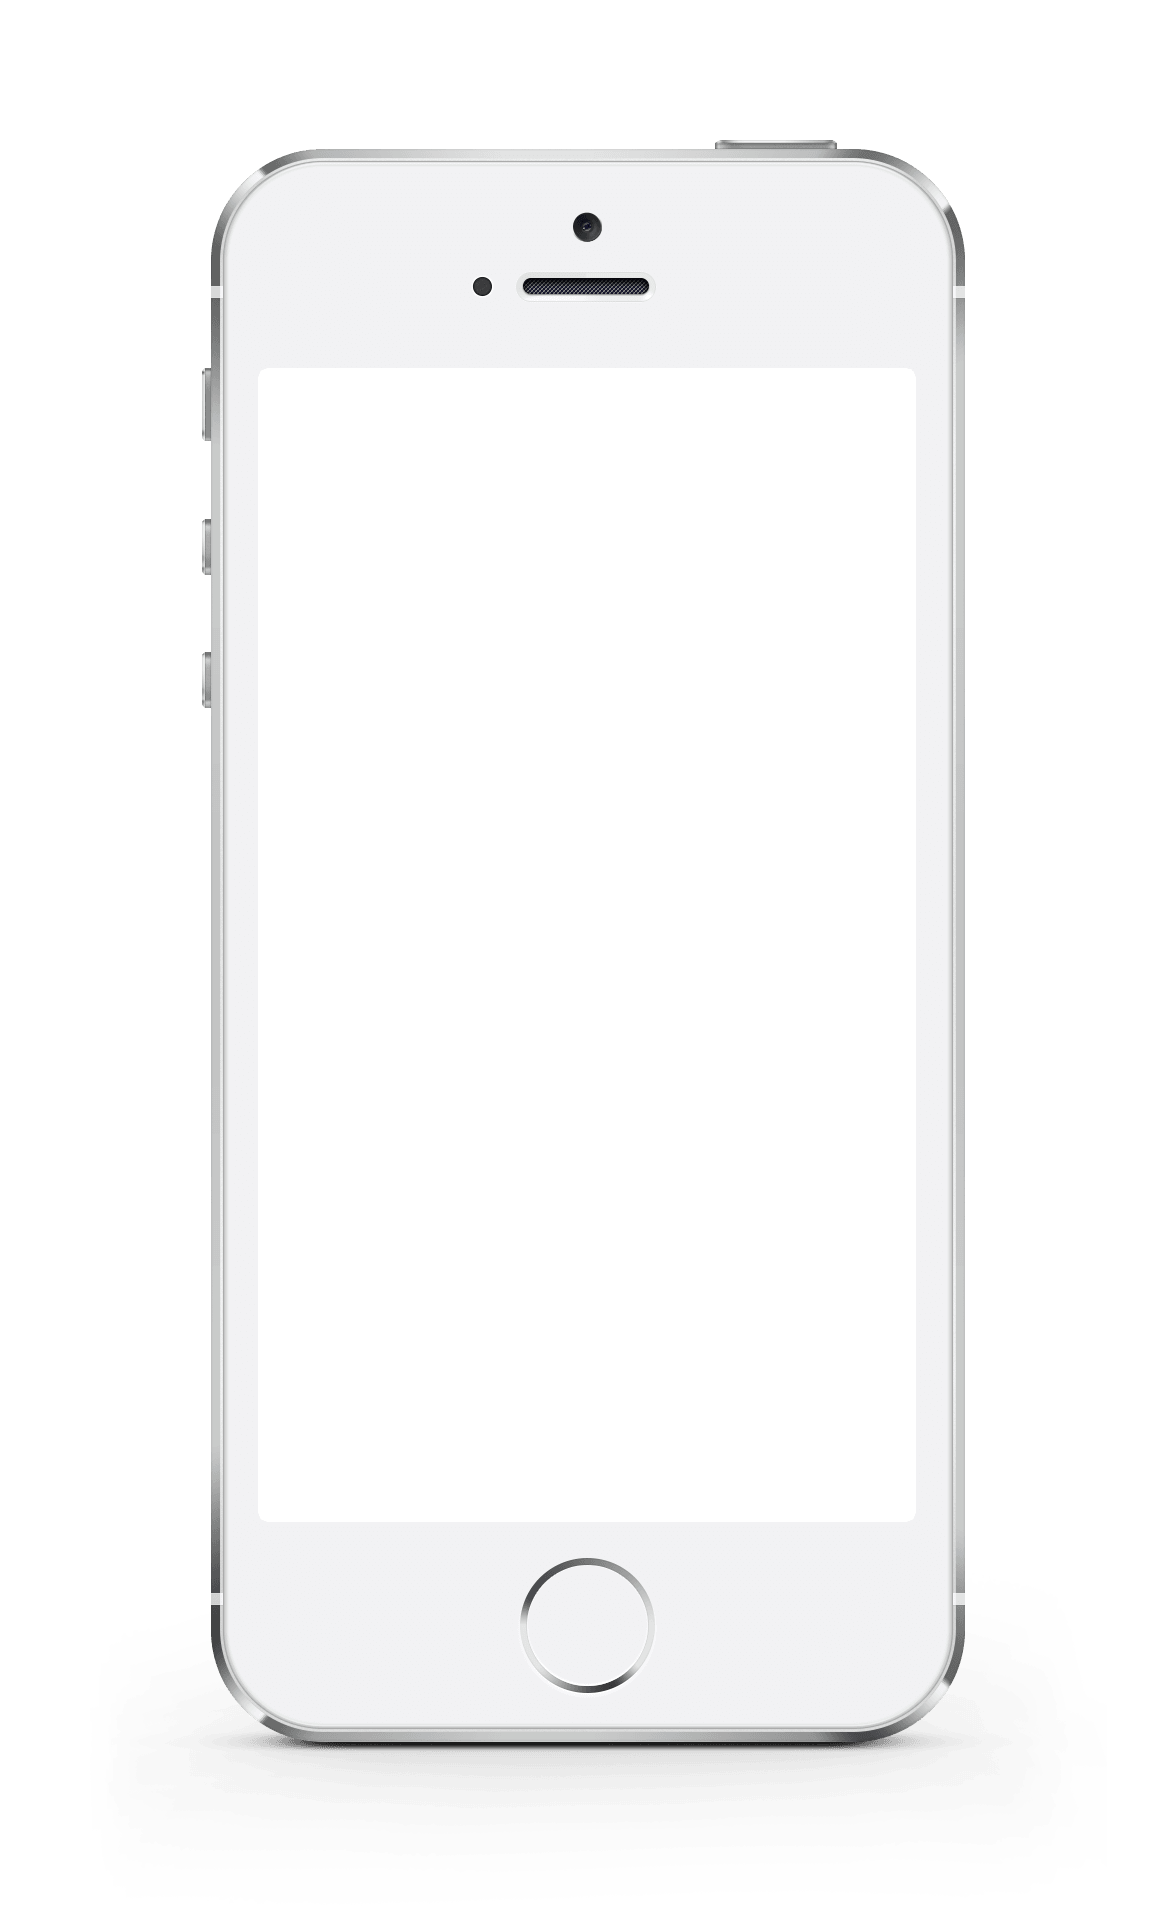 Iphone phone app free. Clipart telephone outline